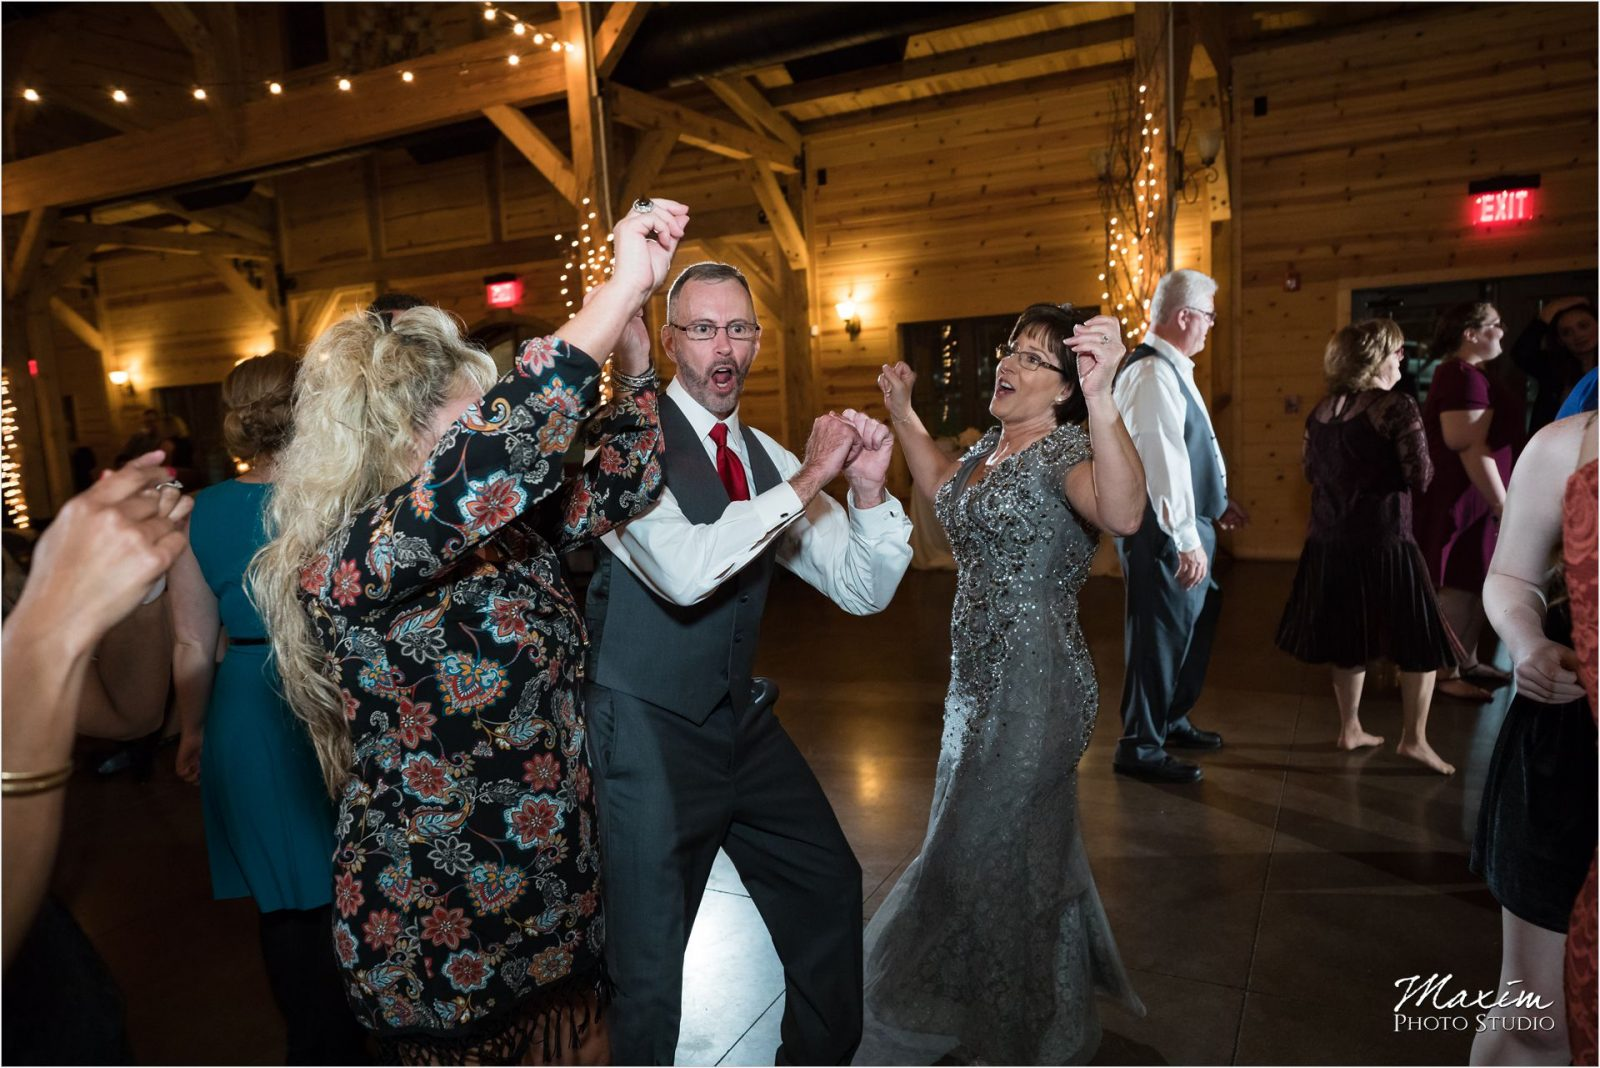 Rolling Meadows Ranch wedding reception guests dancing